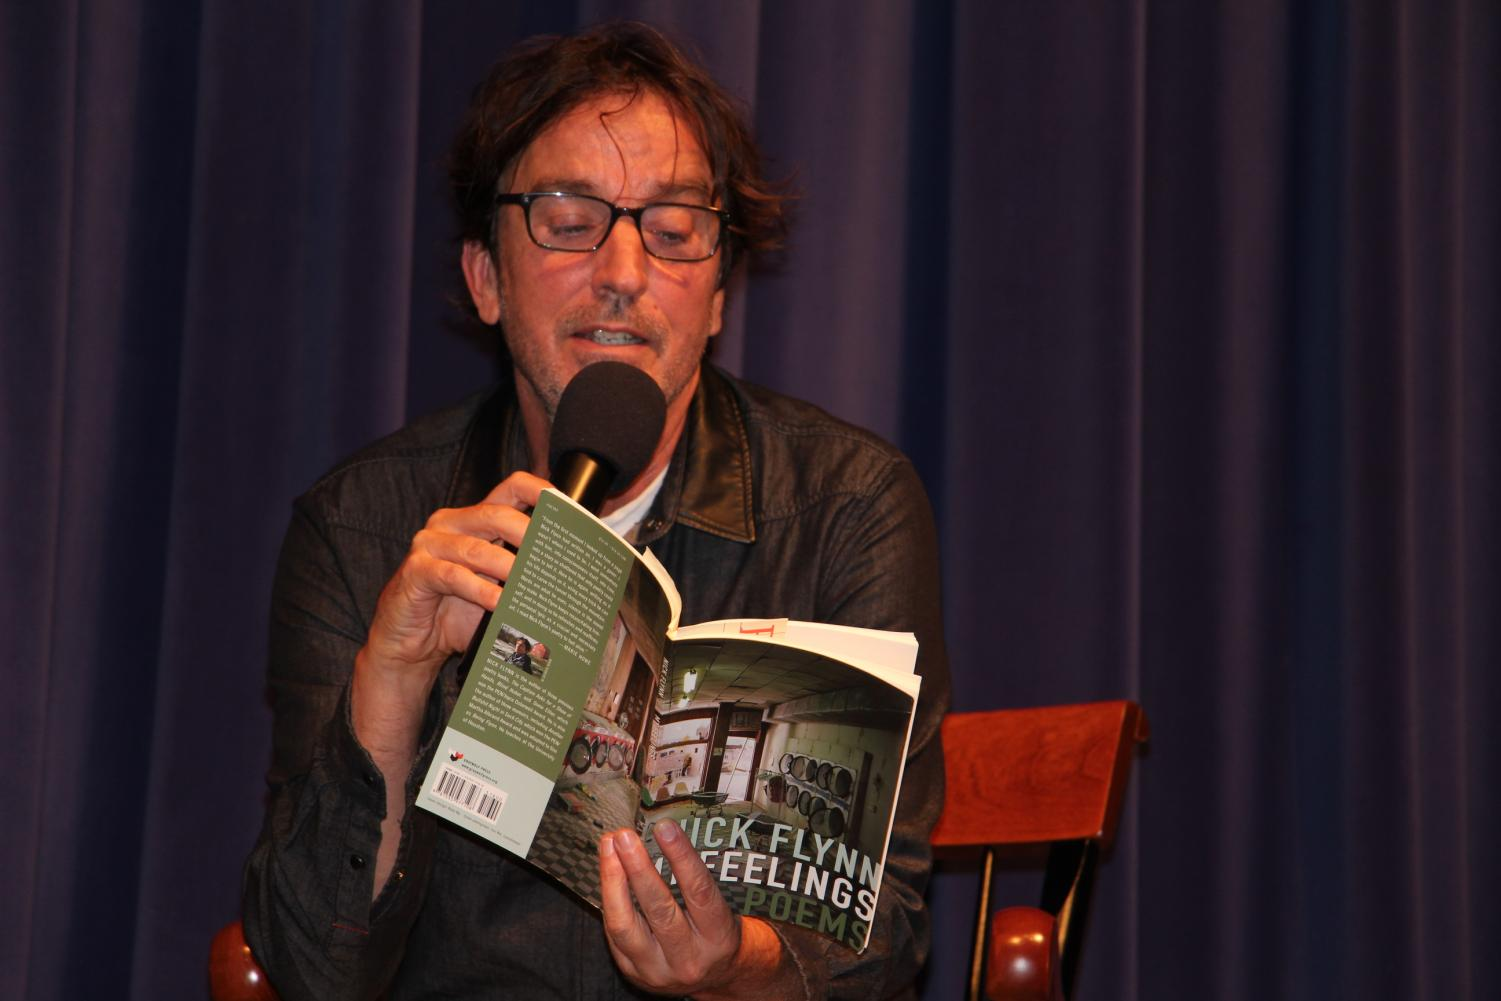 Award-winning poet and author Nick Flynn reads from his book of poems, My Feelings.